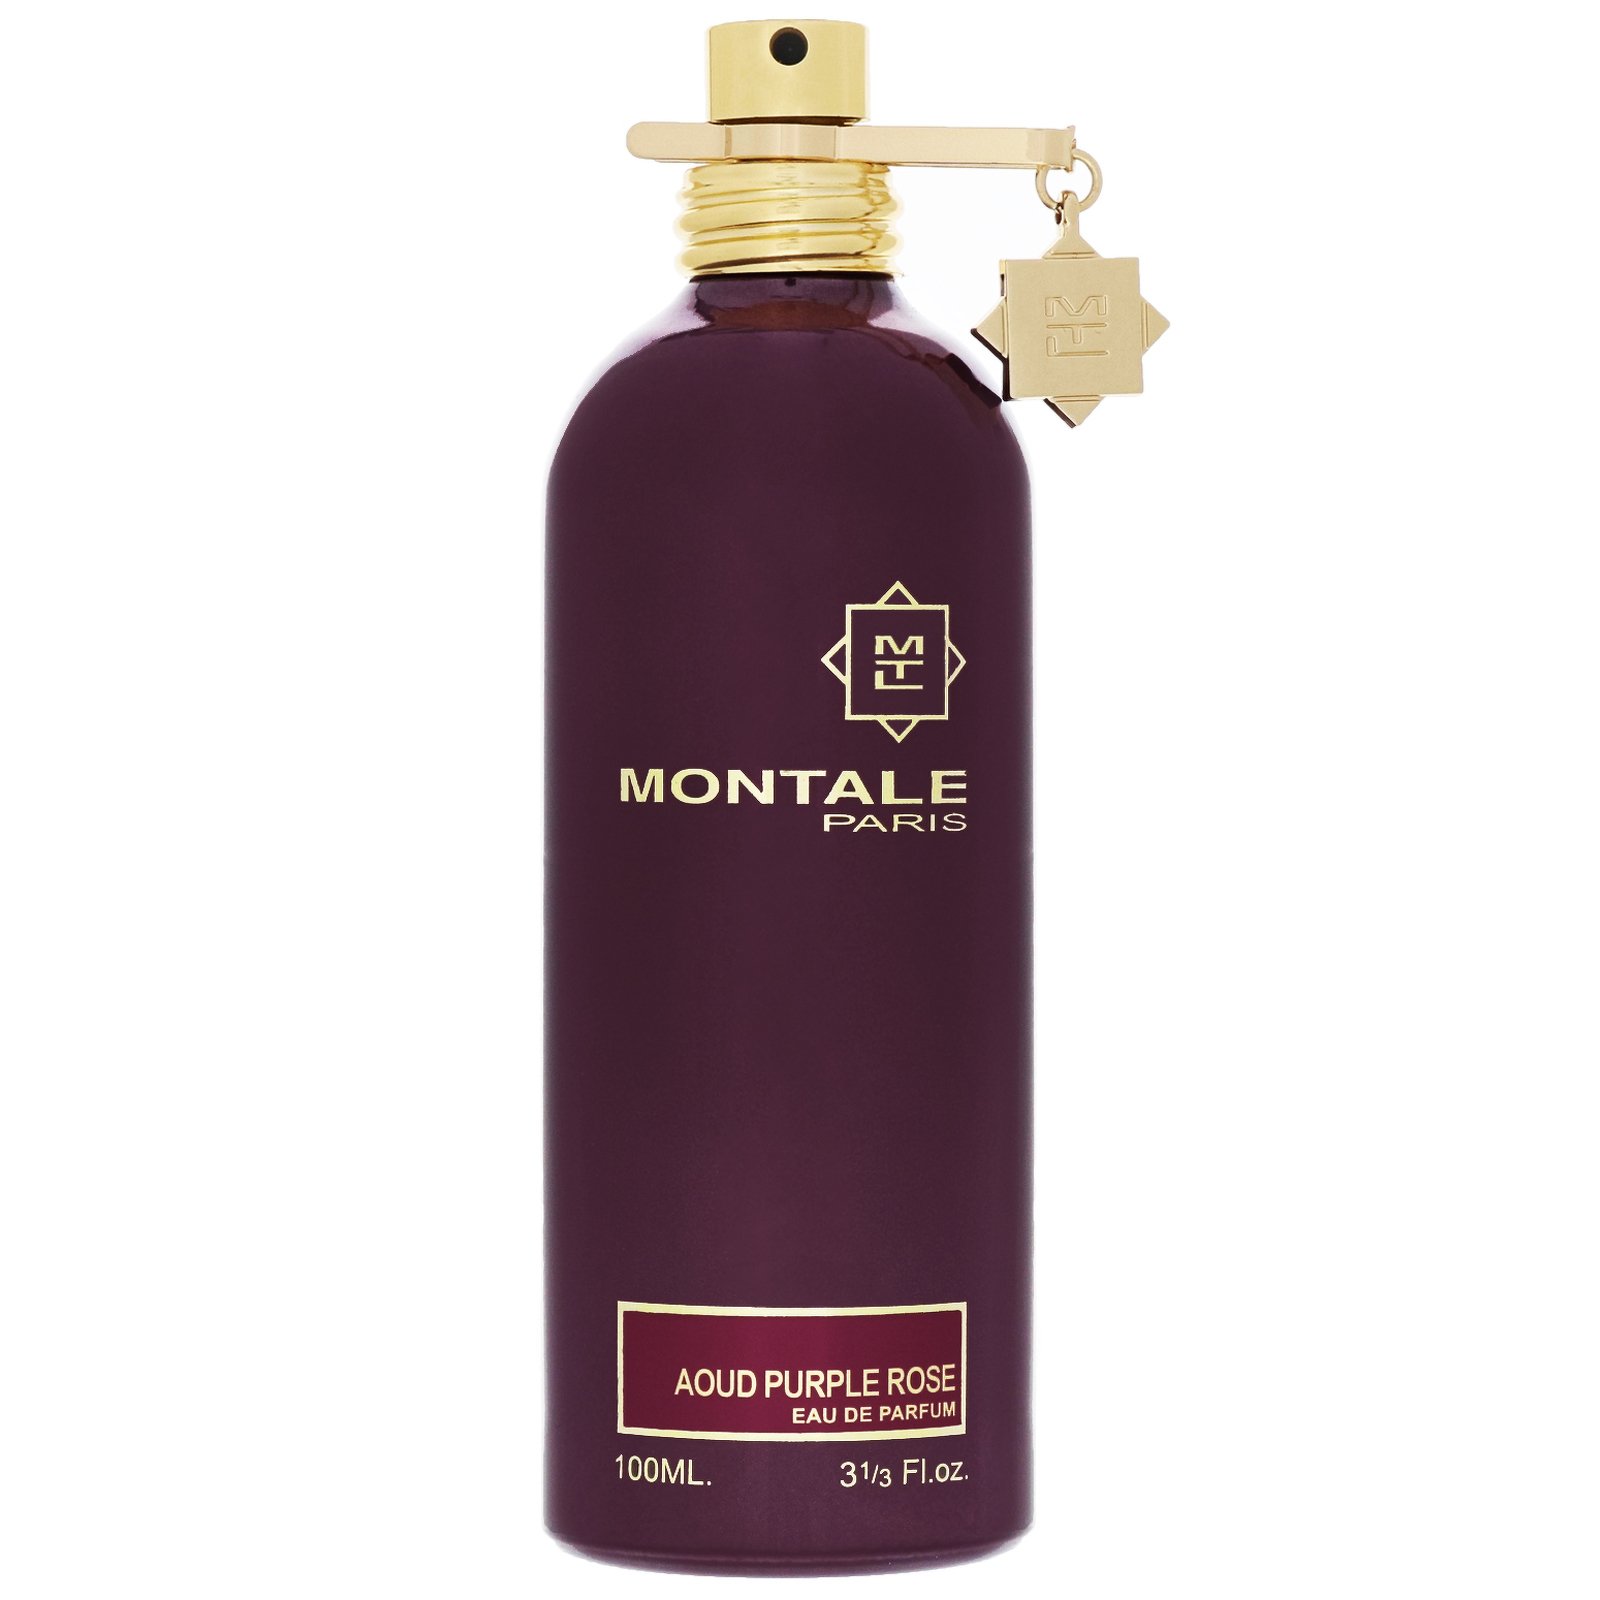 Montale Aoud Purple Rose Eau de Parfum Spray 100ml